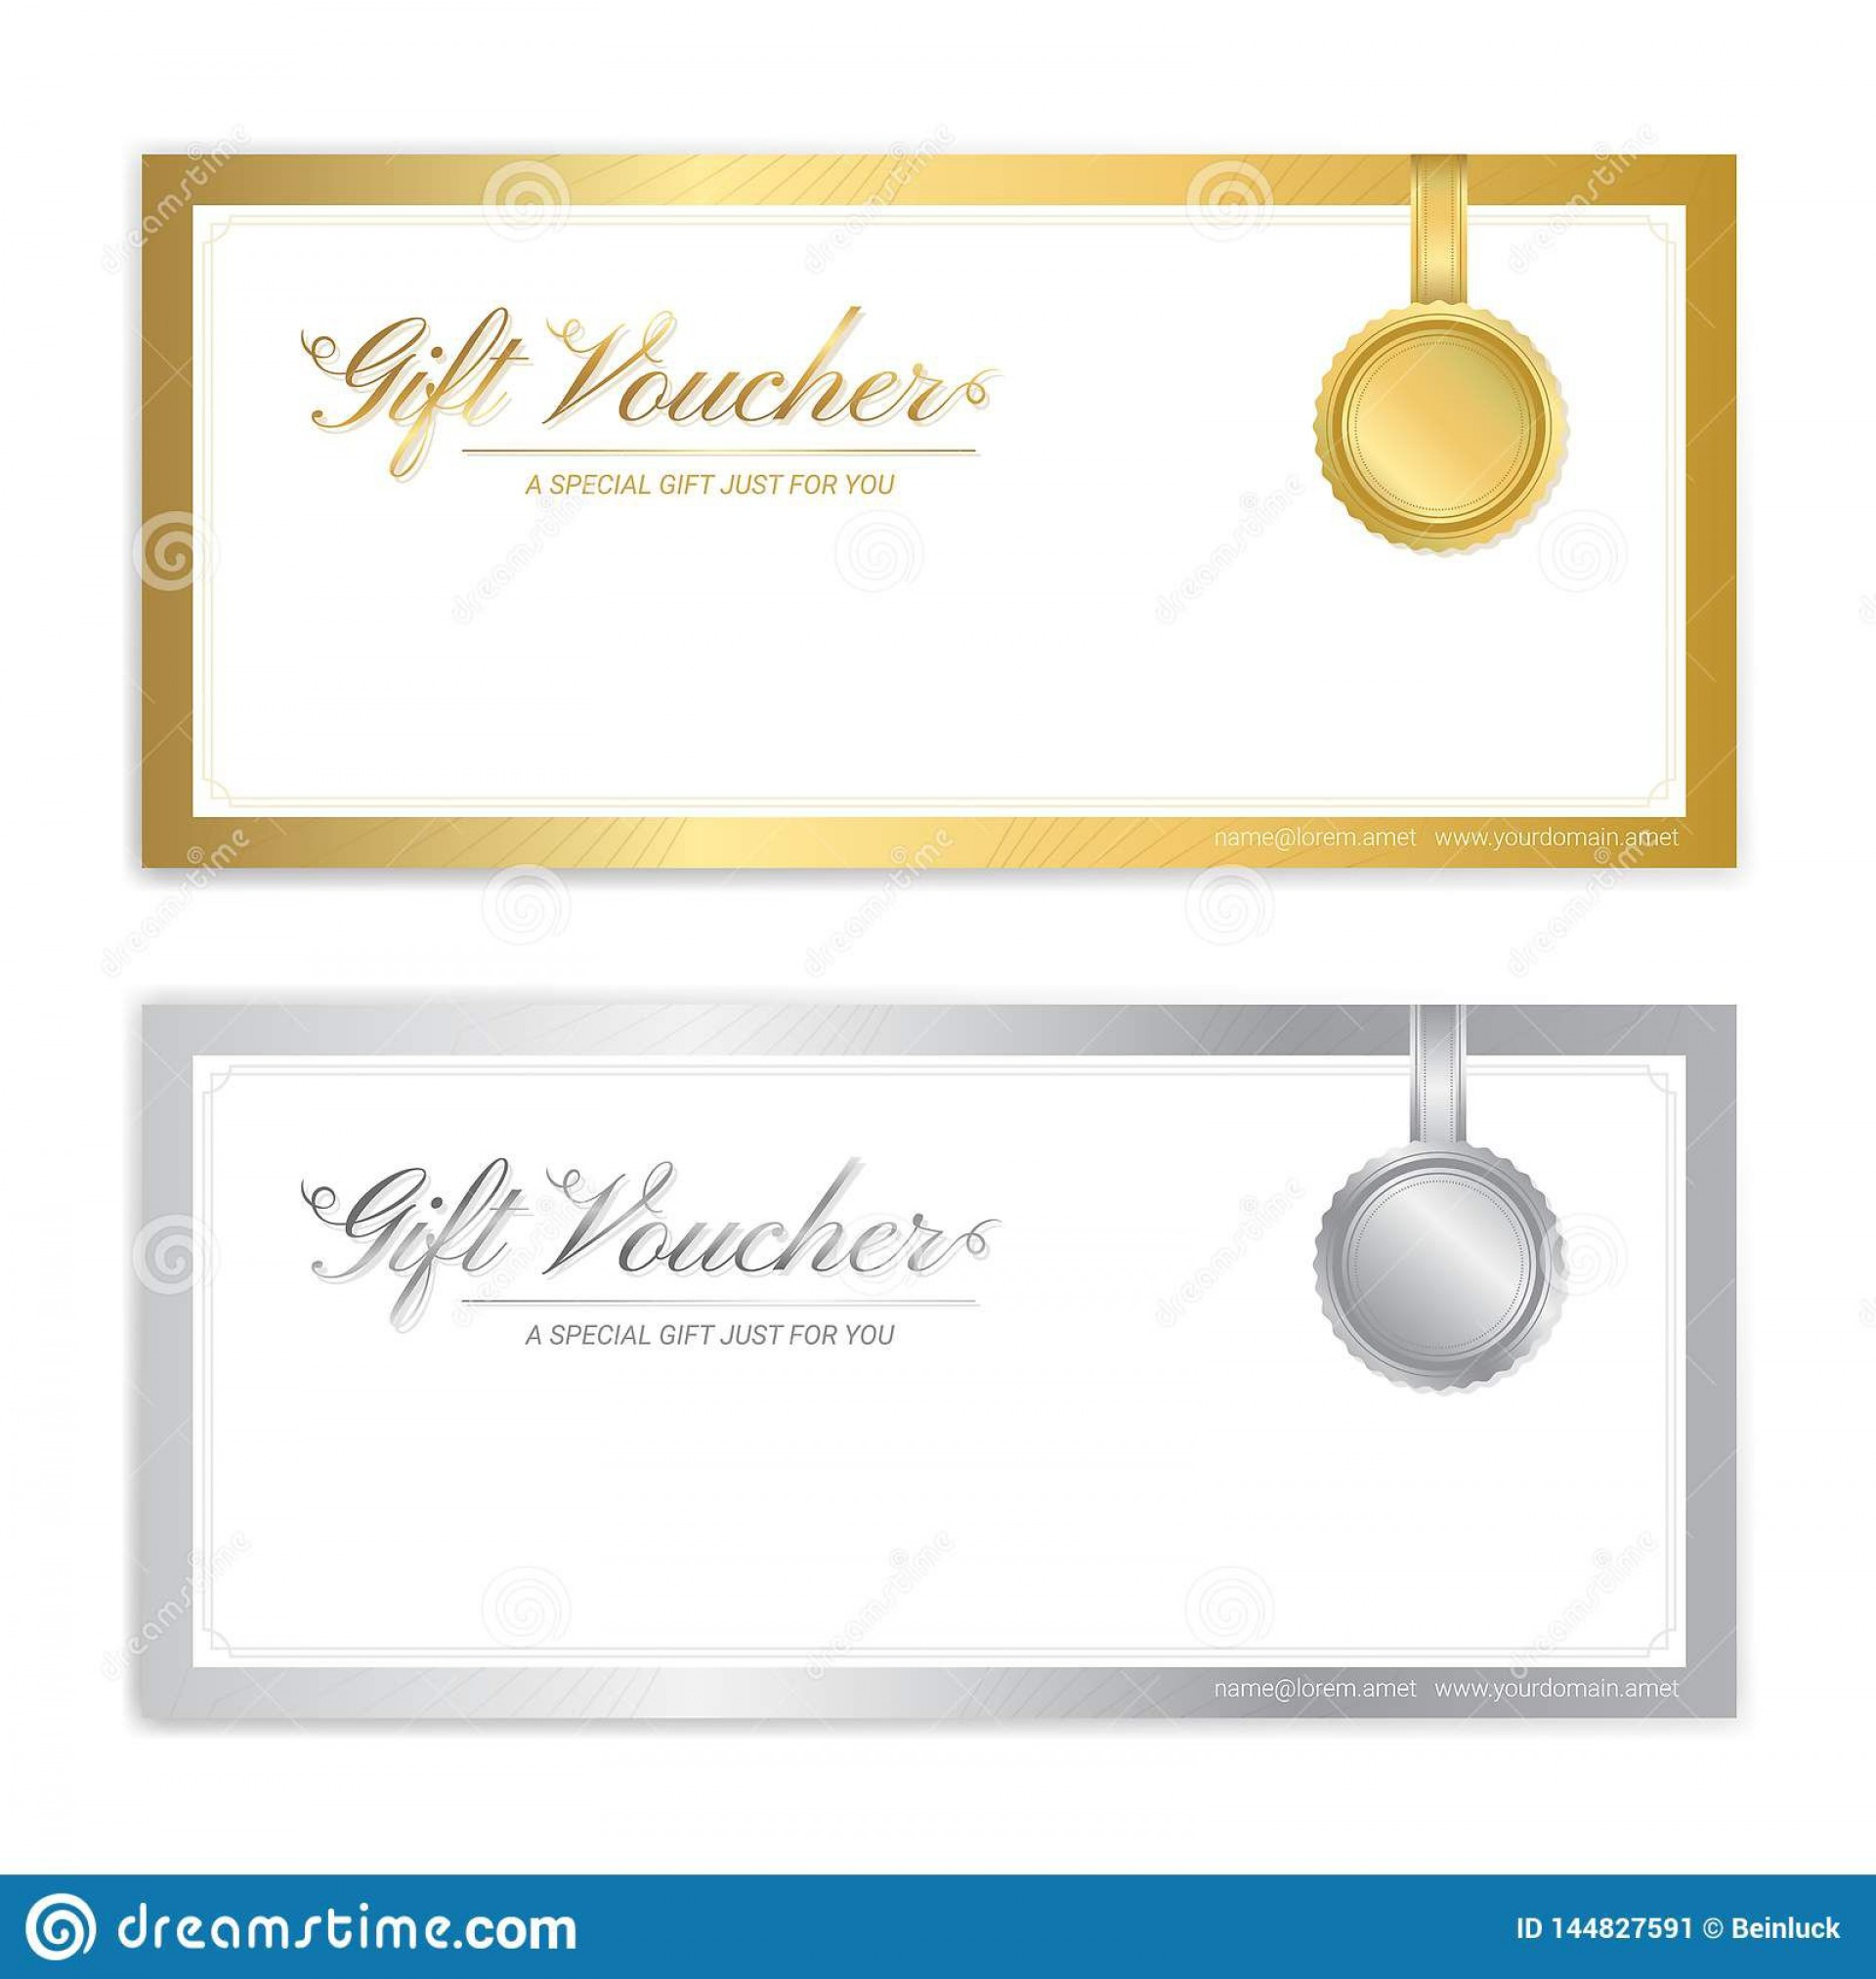 007 Magnificent Template For Gift Certificate Sample  Voucher Word Free Printable In1920